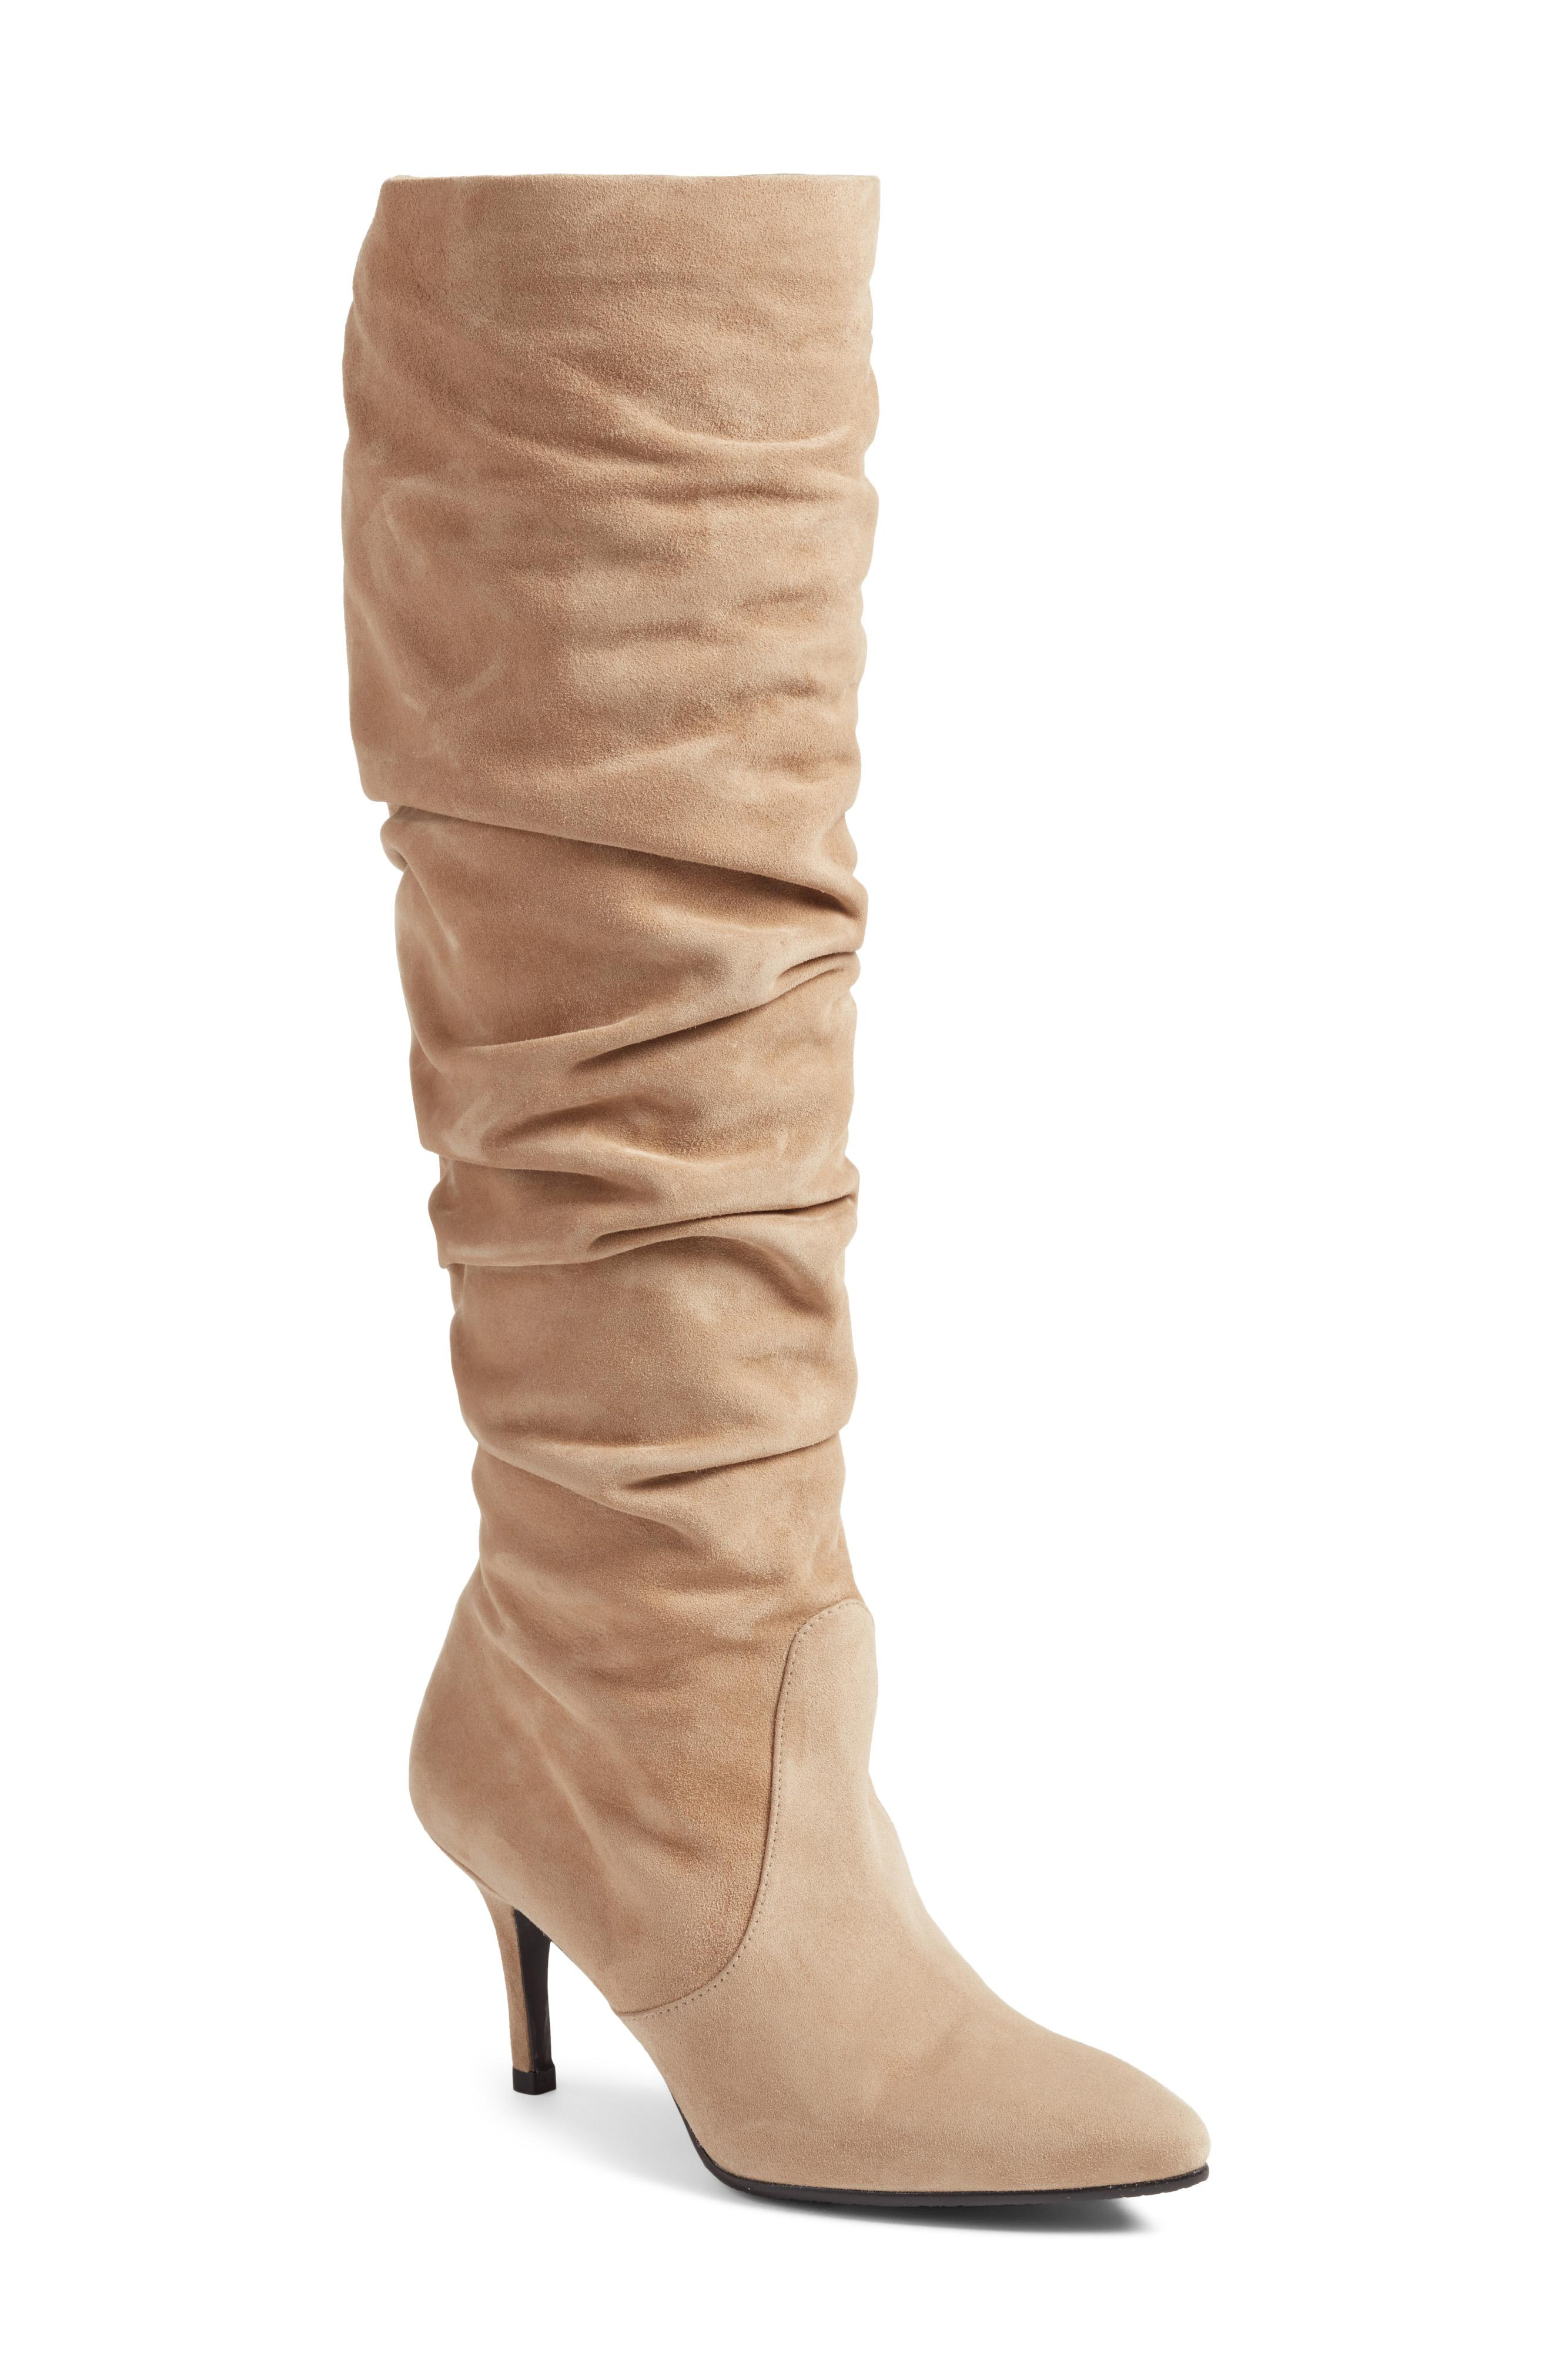 Stuart Weitzman Lafayette Slouch Boot -- Sale: $489.90 / After Sale: $775{ }(Image: Courtesy Nordstrom)